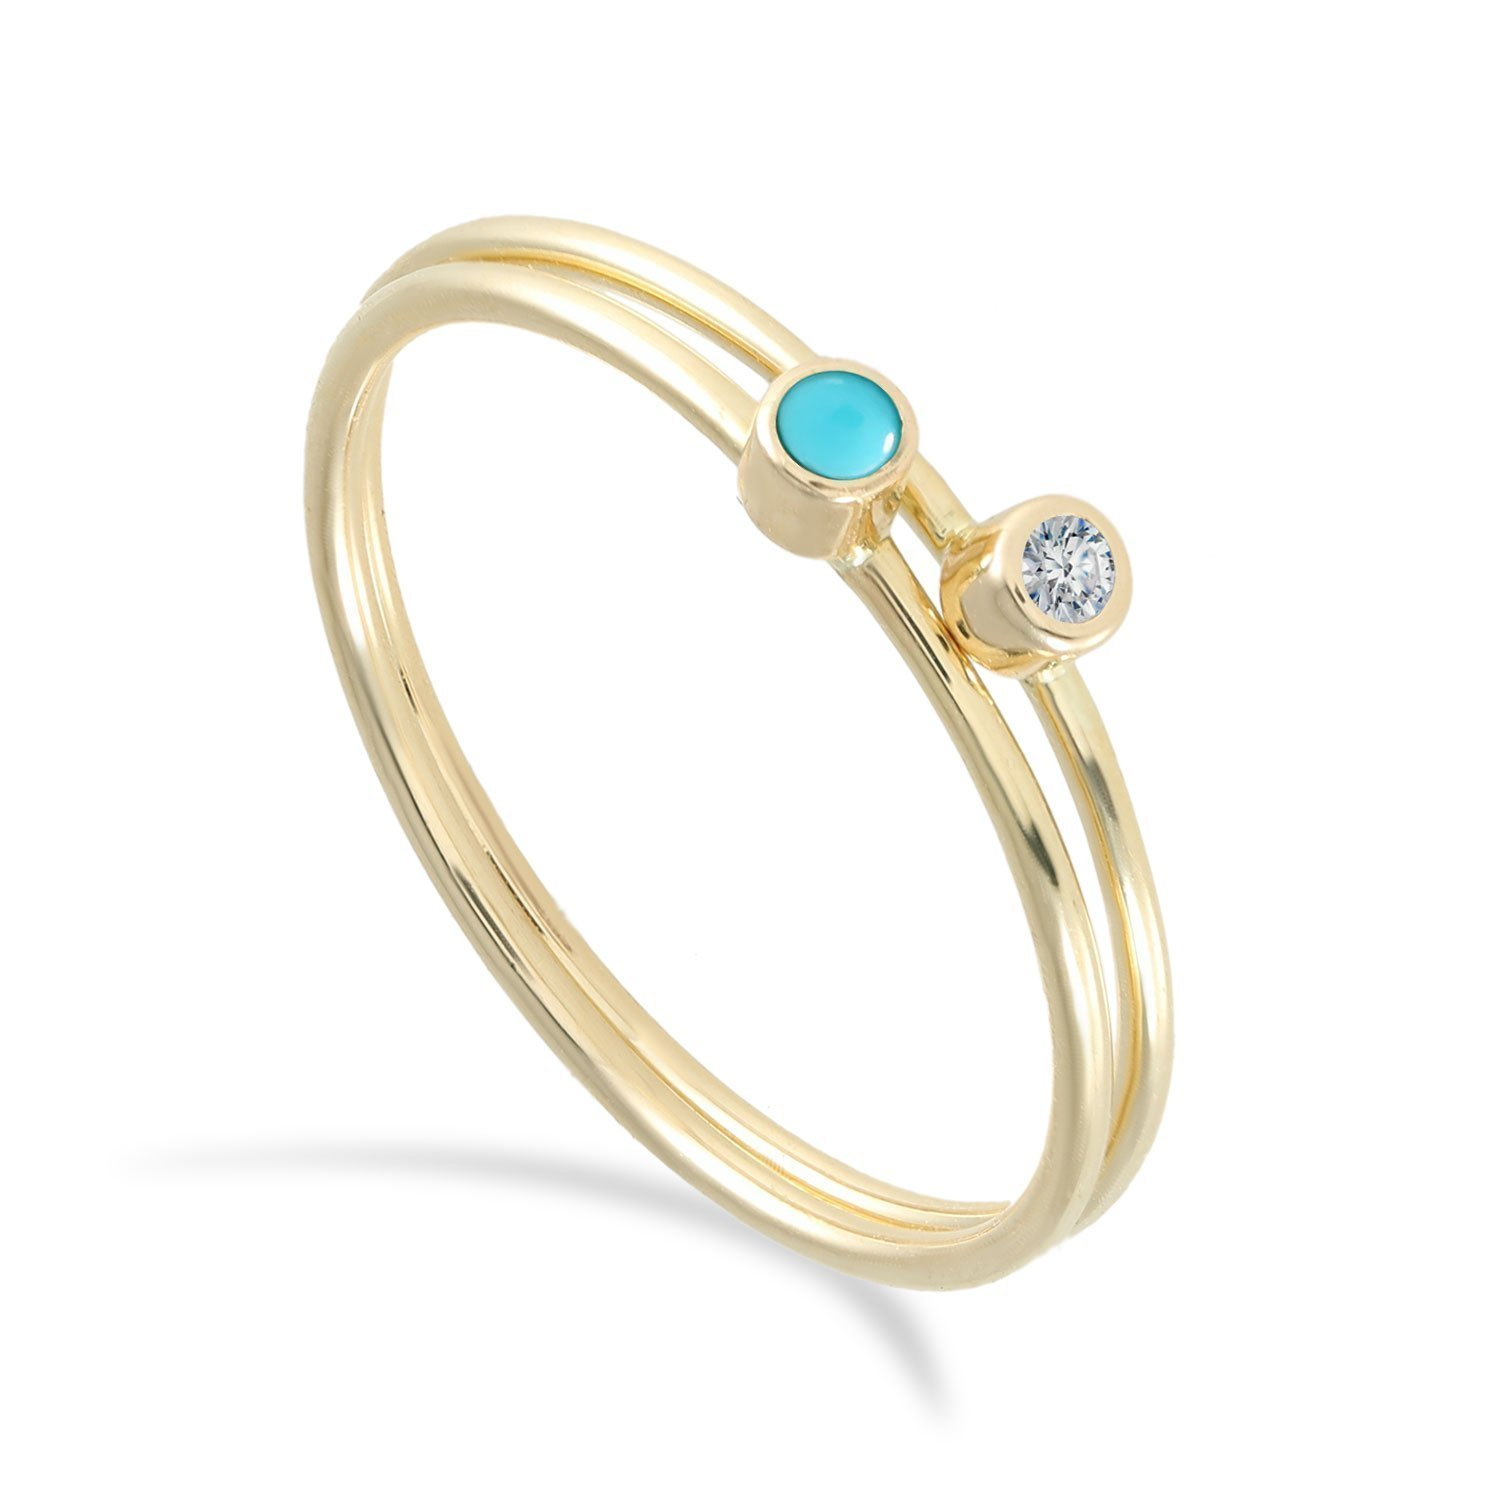 BallucciToosi Women Jewelry - 14k or 18k Gold Diamond Turquoise Sets White Rose Yellow Stacking Stackable Ring - Midi Finger Small Stone Thin Bands Size 4 to 10